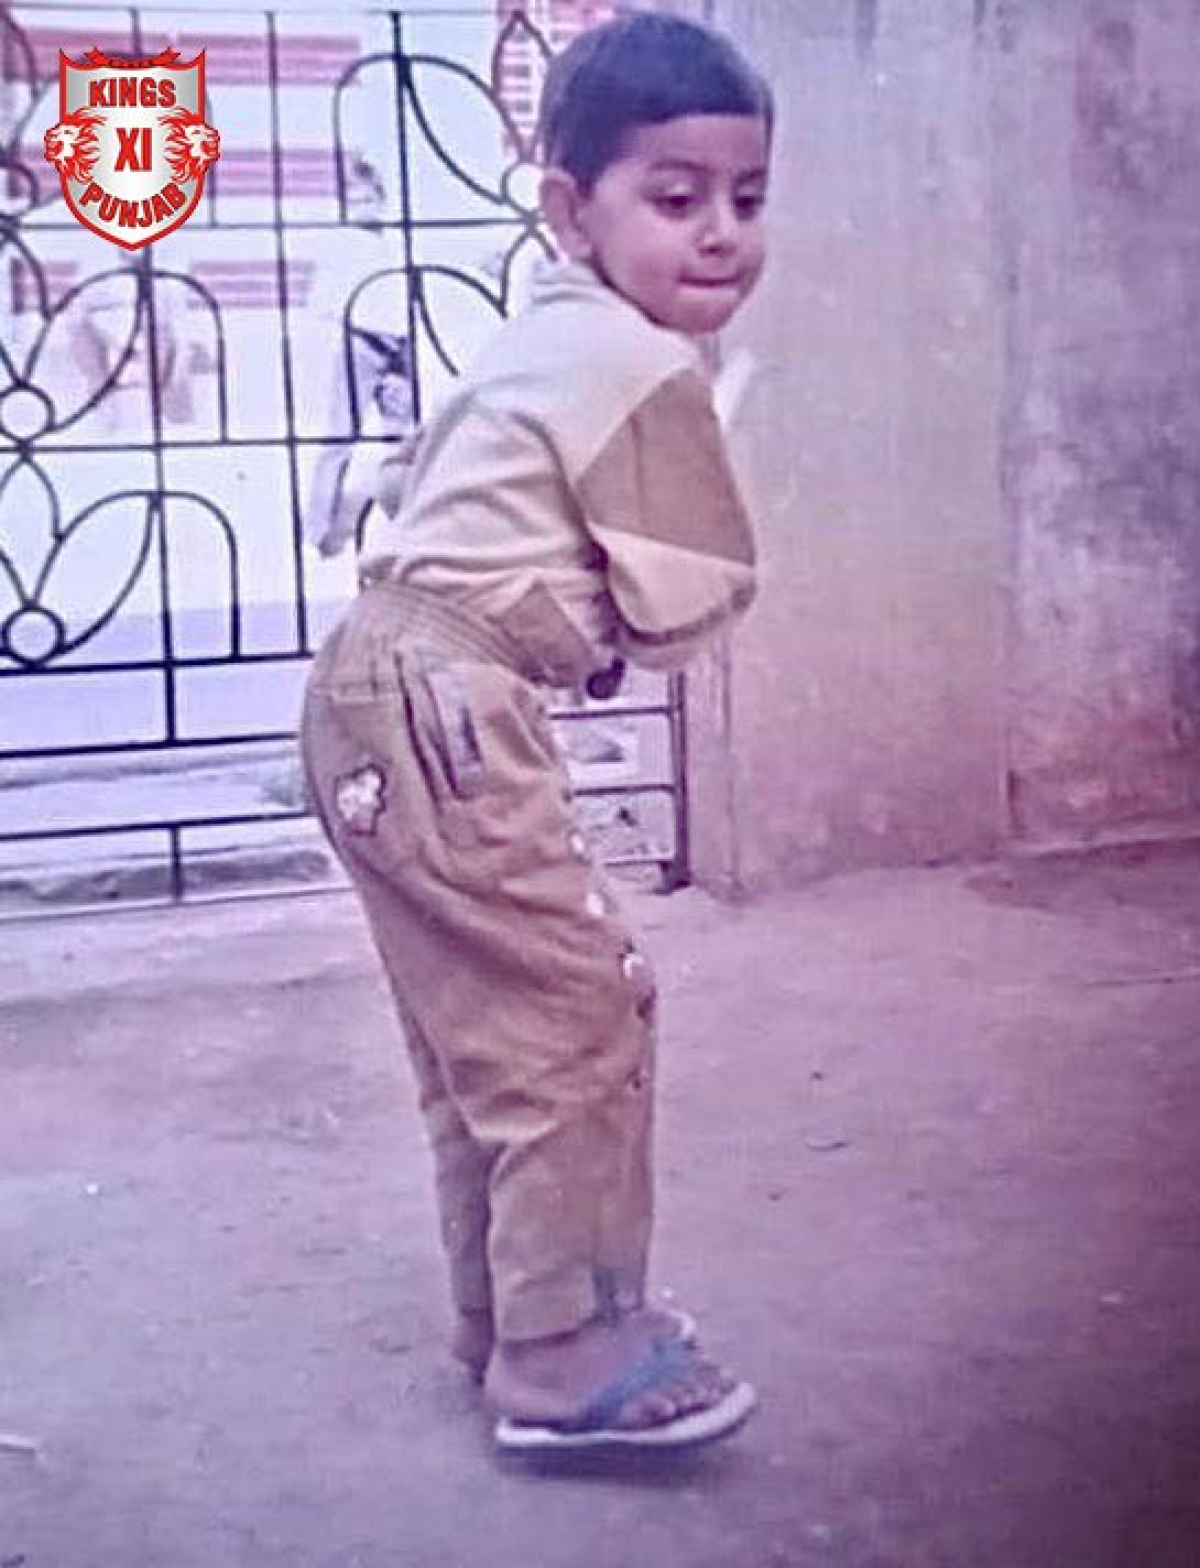 Children's Day 2020: Can you guess these young Kings XI Punjab cricketers?